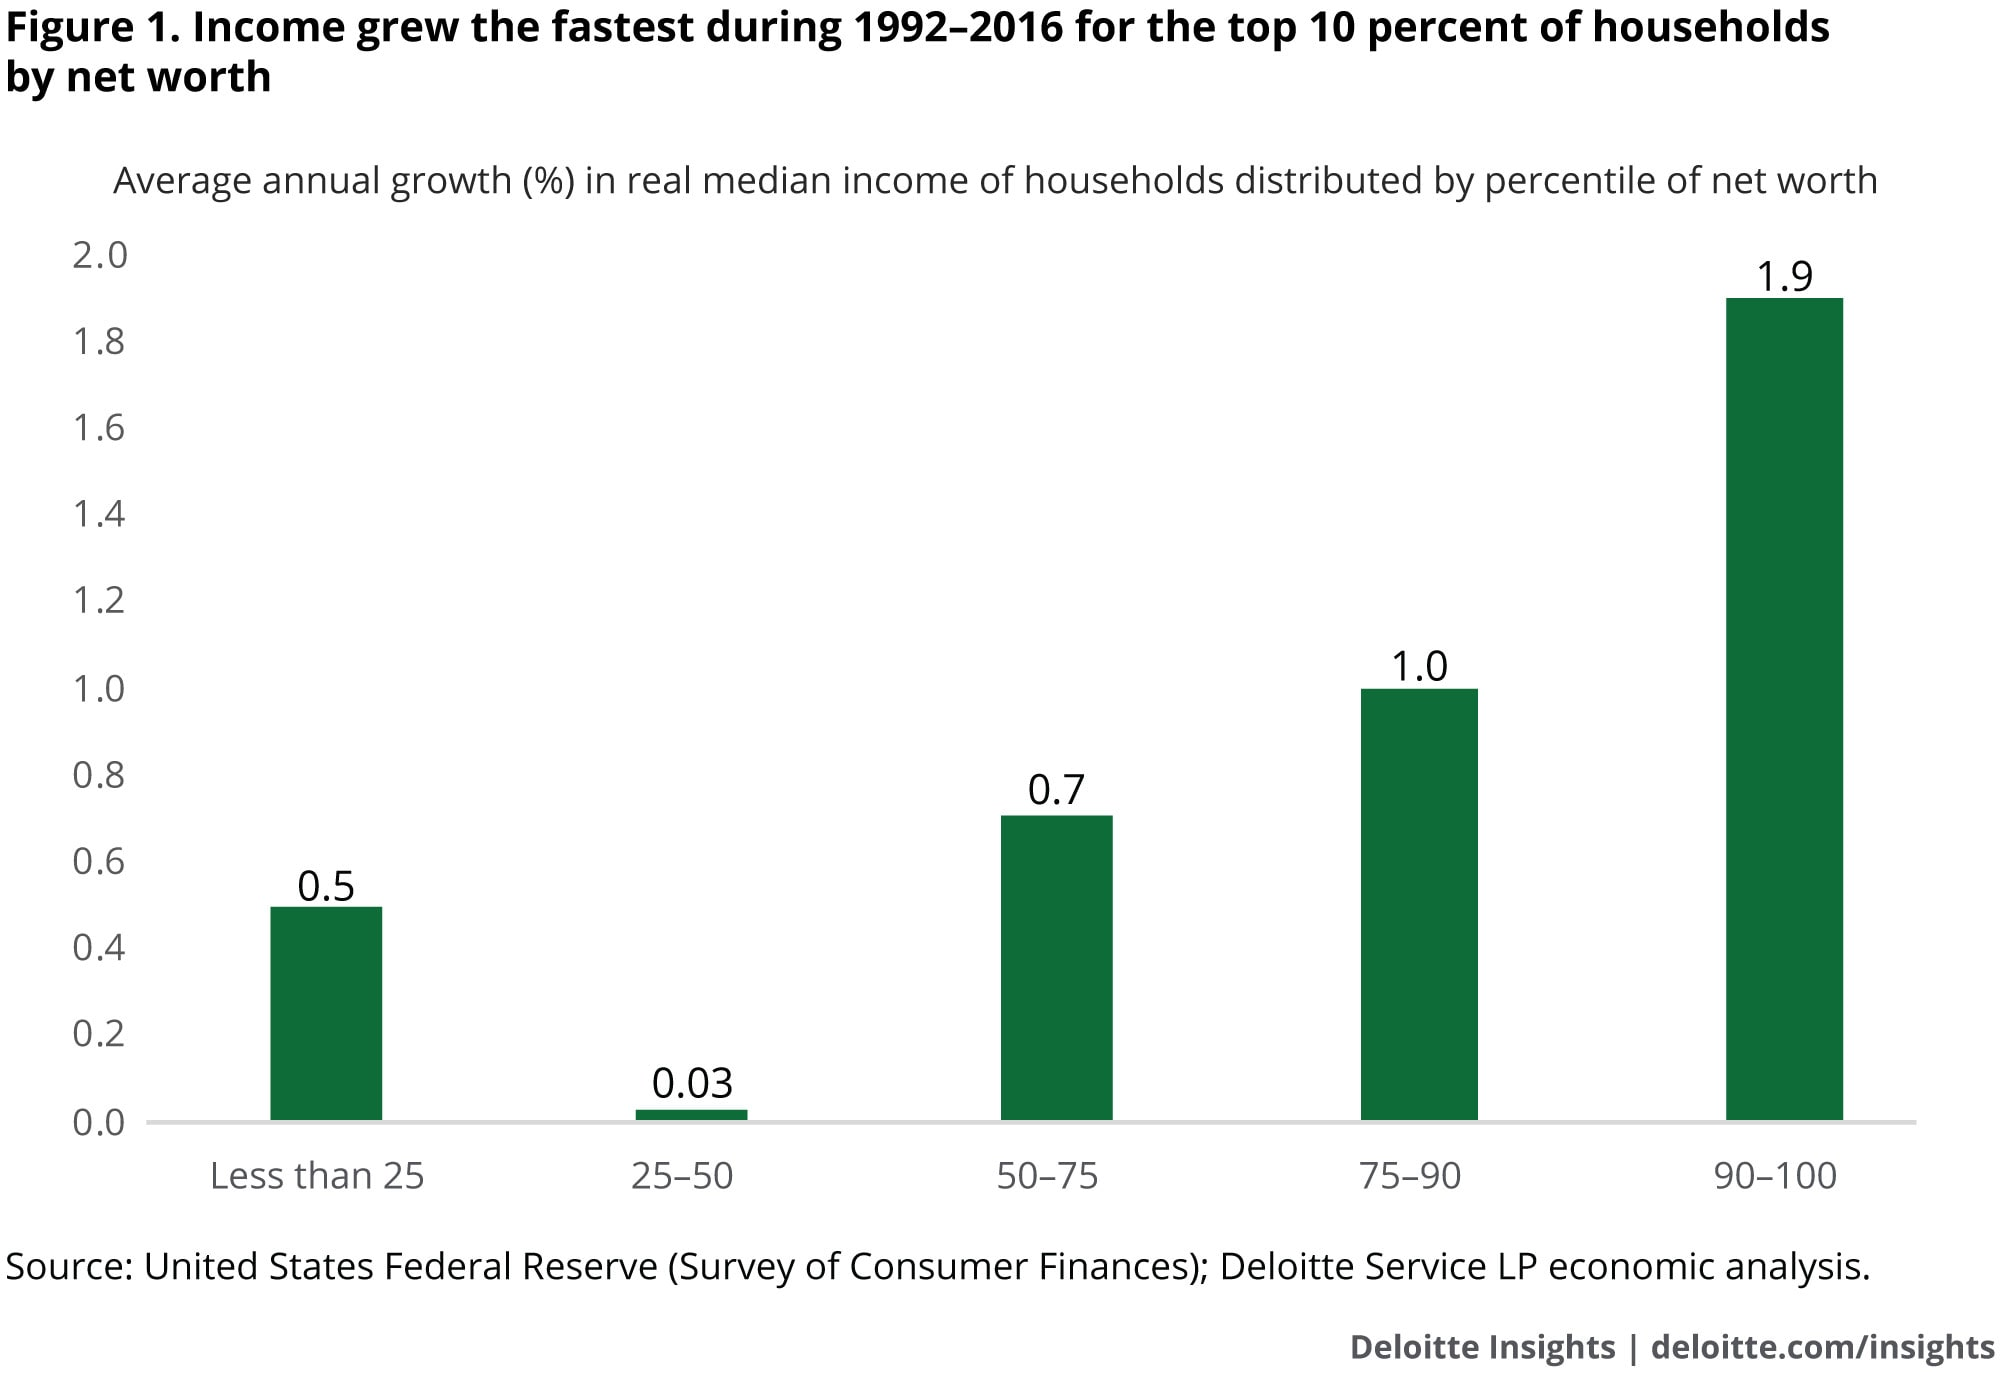 Income grew the fastest during 1992–2016 for the top 10 percent of households by net worth